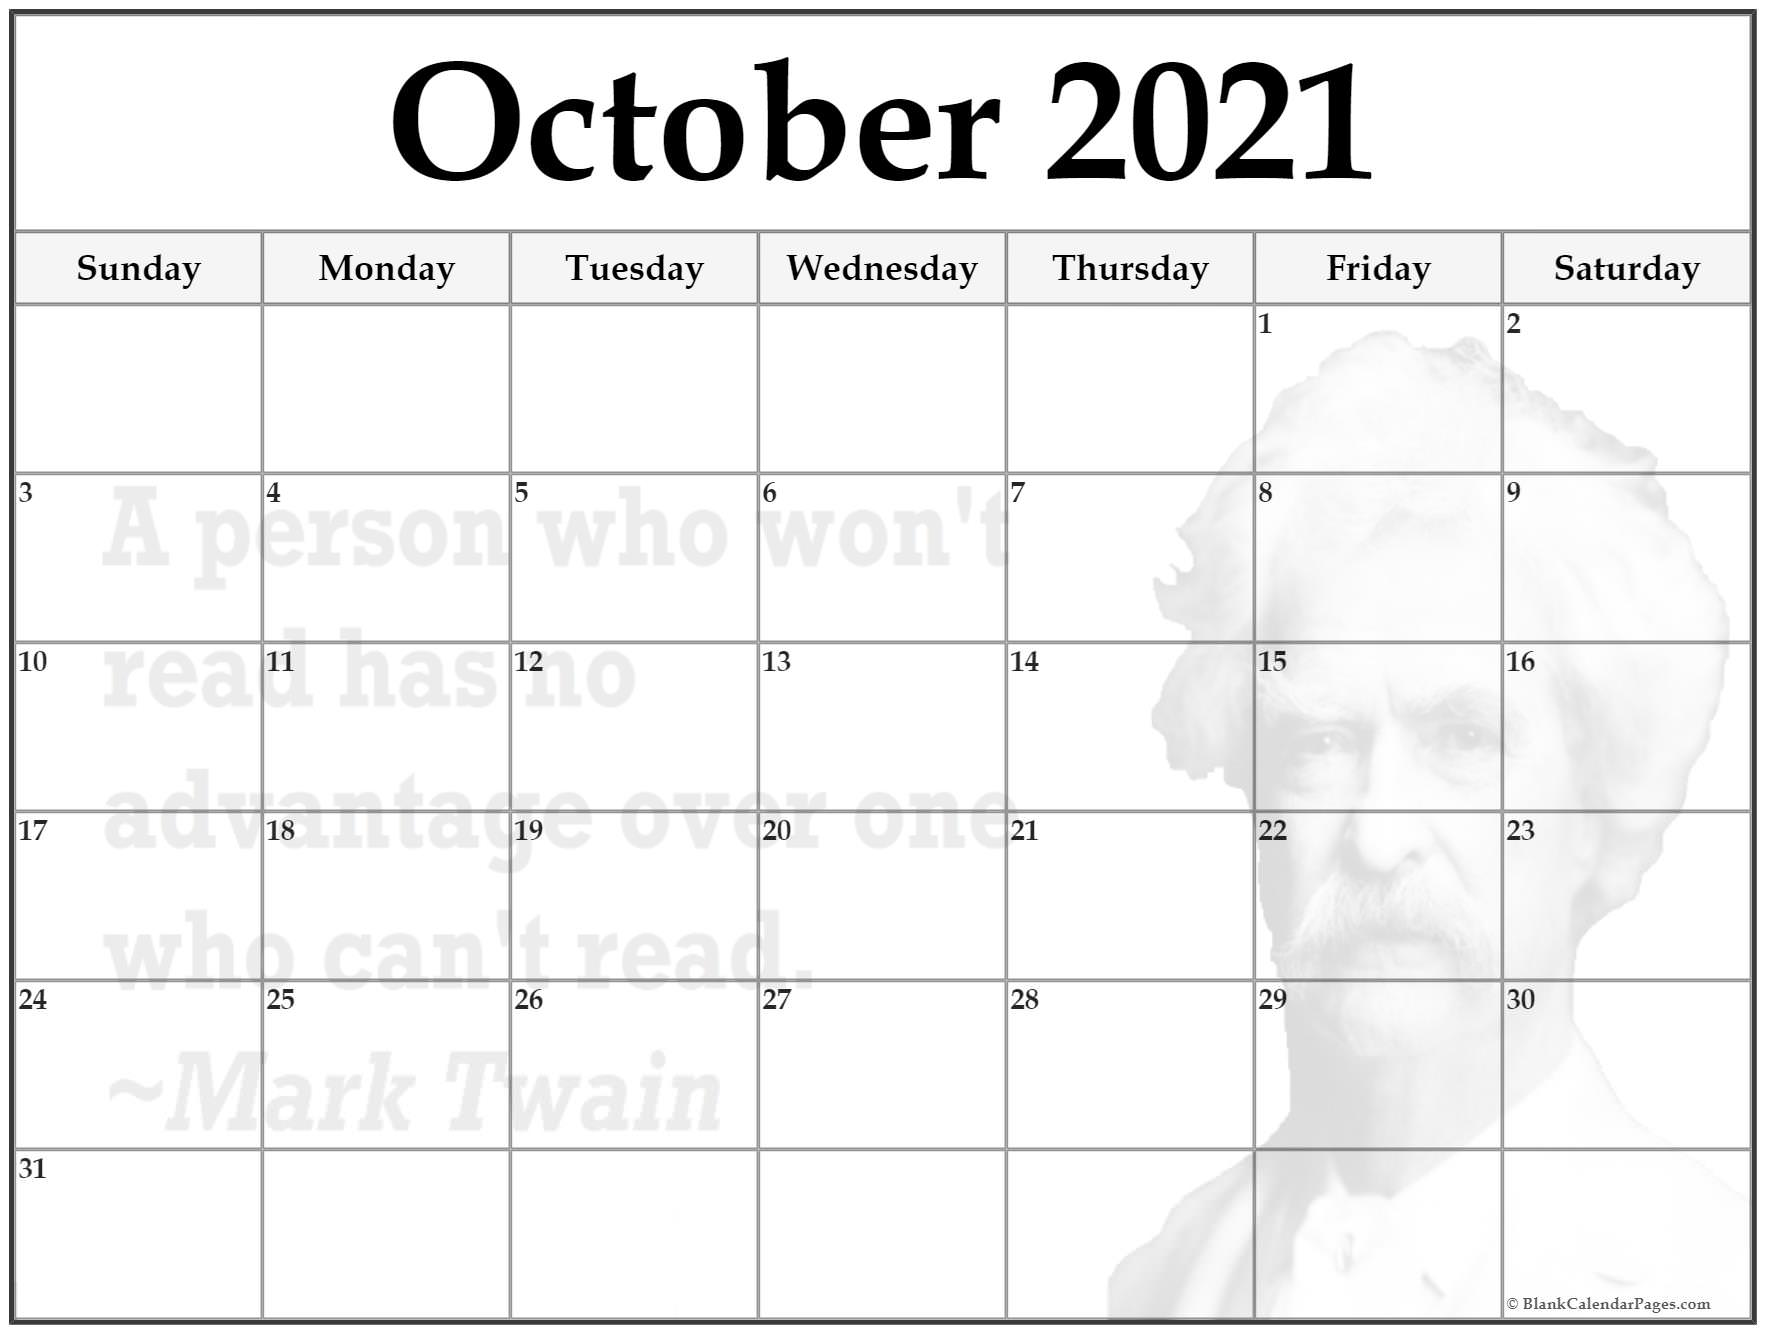 October 2018 printable quote calendar template. A person who won't read has no advantage over a person who can't read. ~Mark Twain